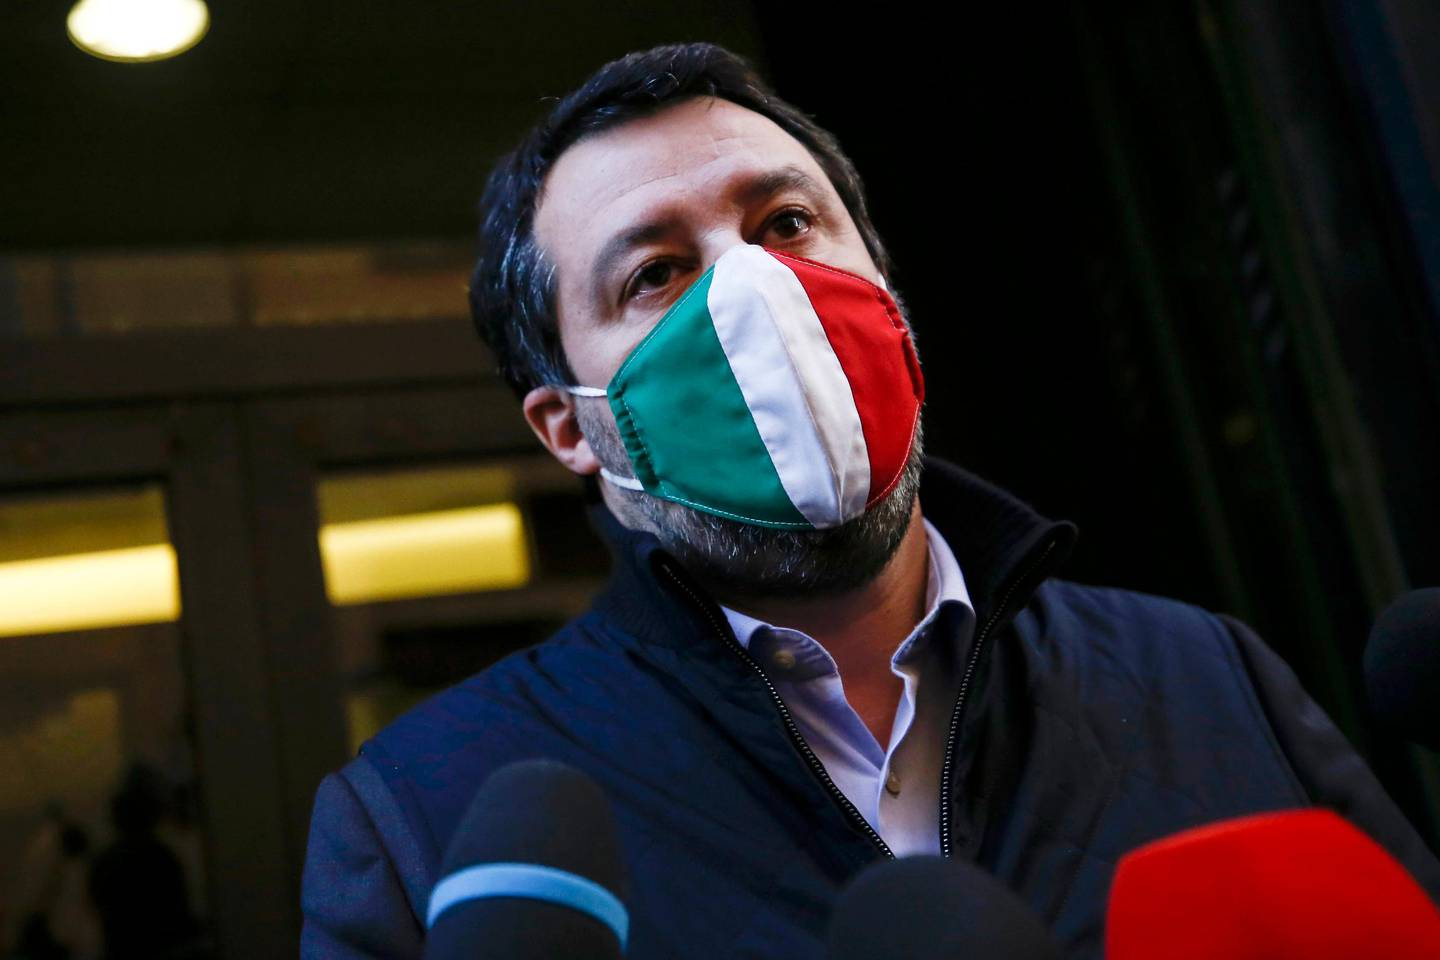 Leader of The League party, Matteo Salvini, meets reporters in Rome, Tuesday, Jan. 26, 2021. Italian Premier Giuseppe Conte resigned Tuesday after a key coalition ally pulled his party's support over Conte's handling of the coronavirus pandemic, setting the stage for consultations this week to determine if he can form a third government. (Cecilia Fabiano/LaPresse via AP)